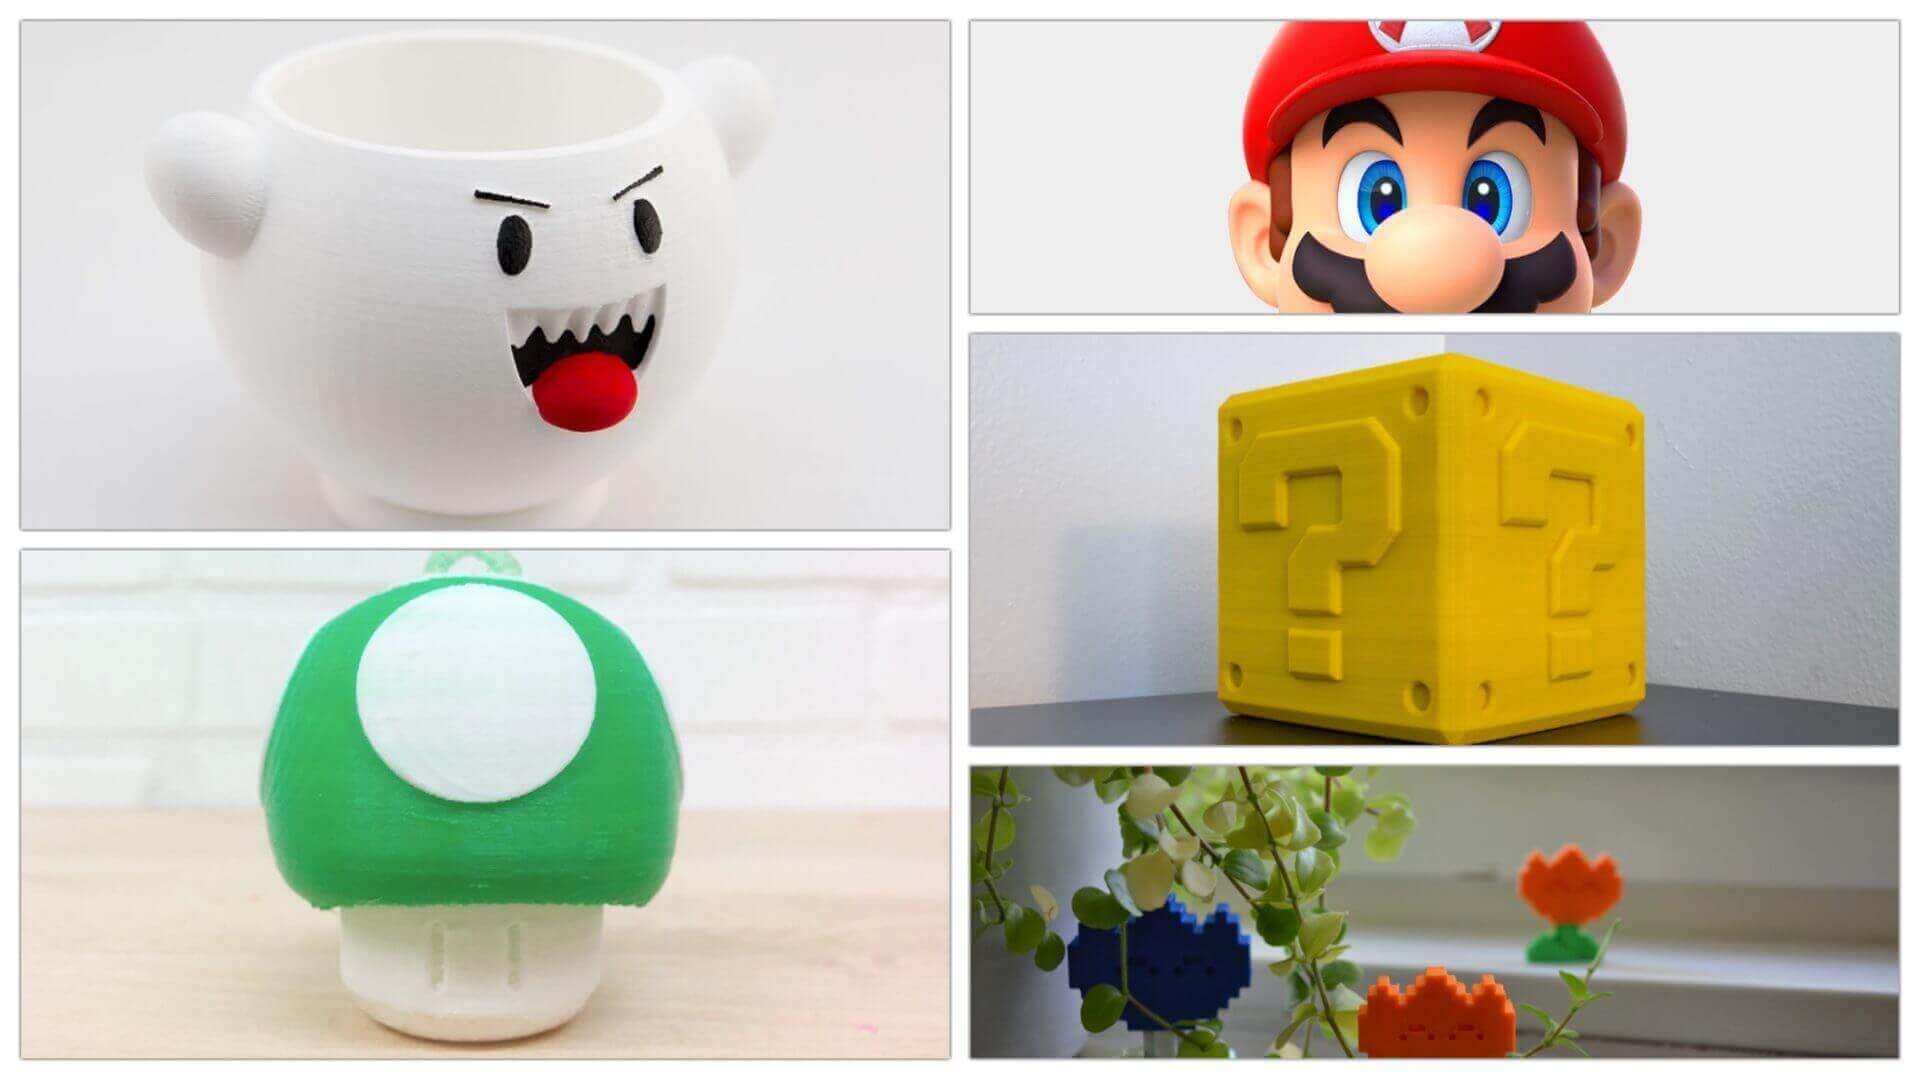 10 Great Super Mario Figures & Toys to 3D Print | All3DP